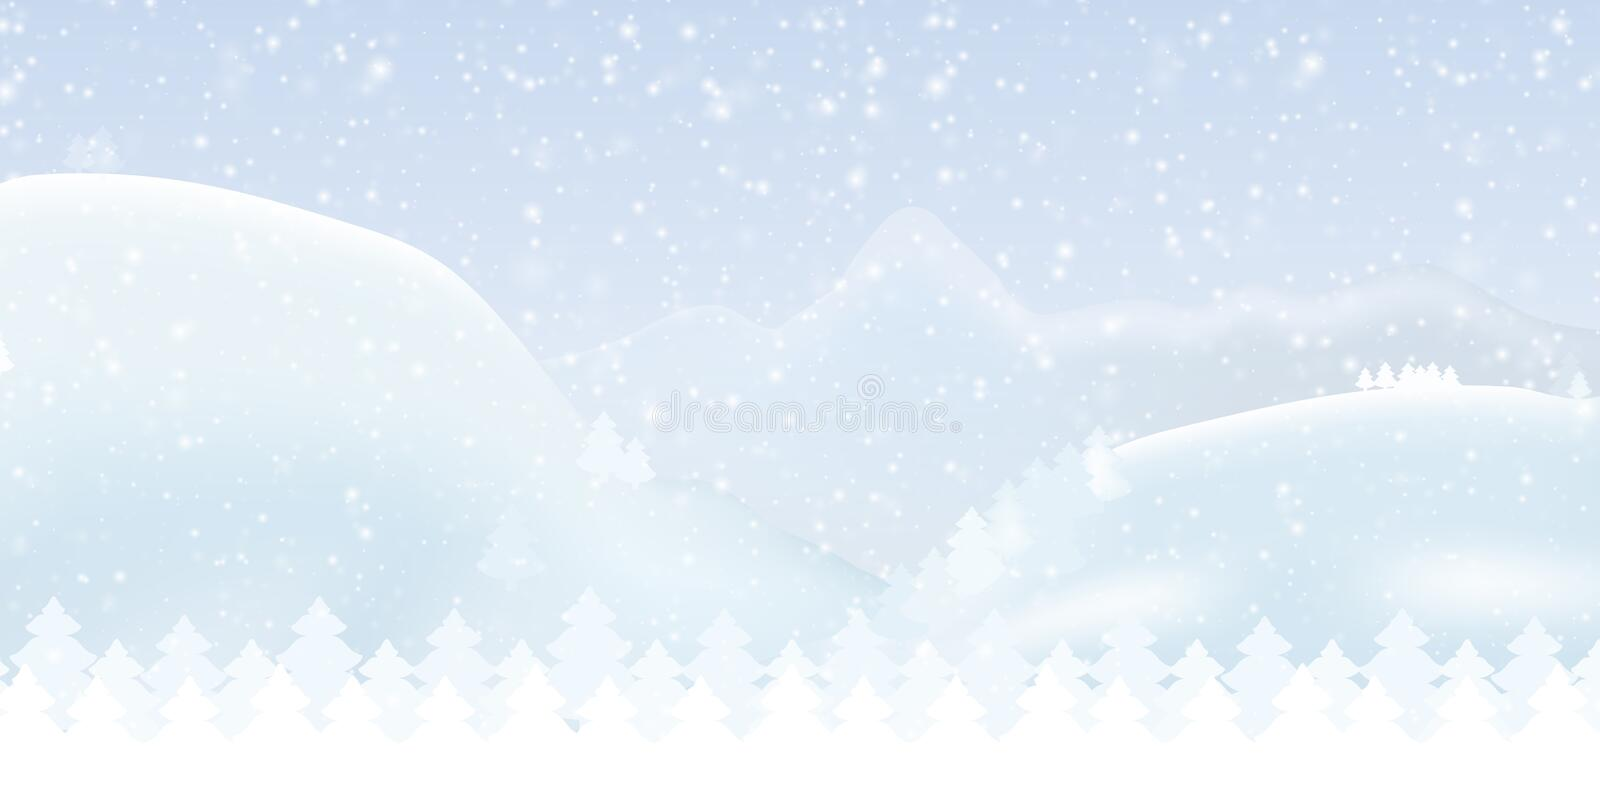 Vector illustration of a snowy winter mountain landscape with forest, sky and falling snow - suitable as a Christmas greeting card royalty free illustration